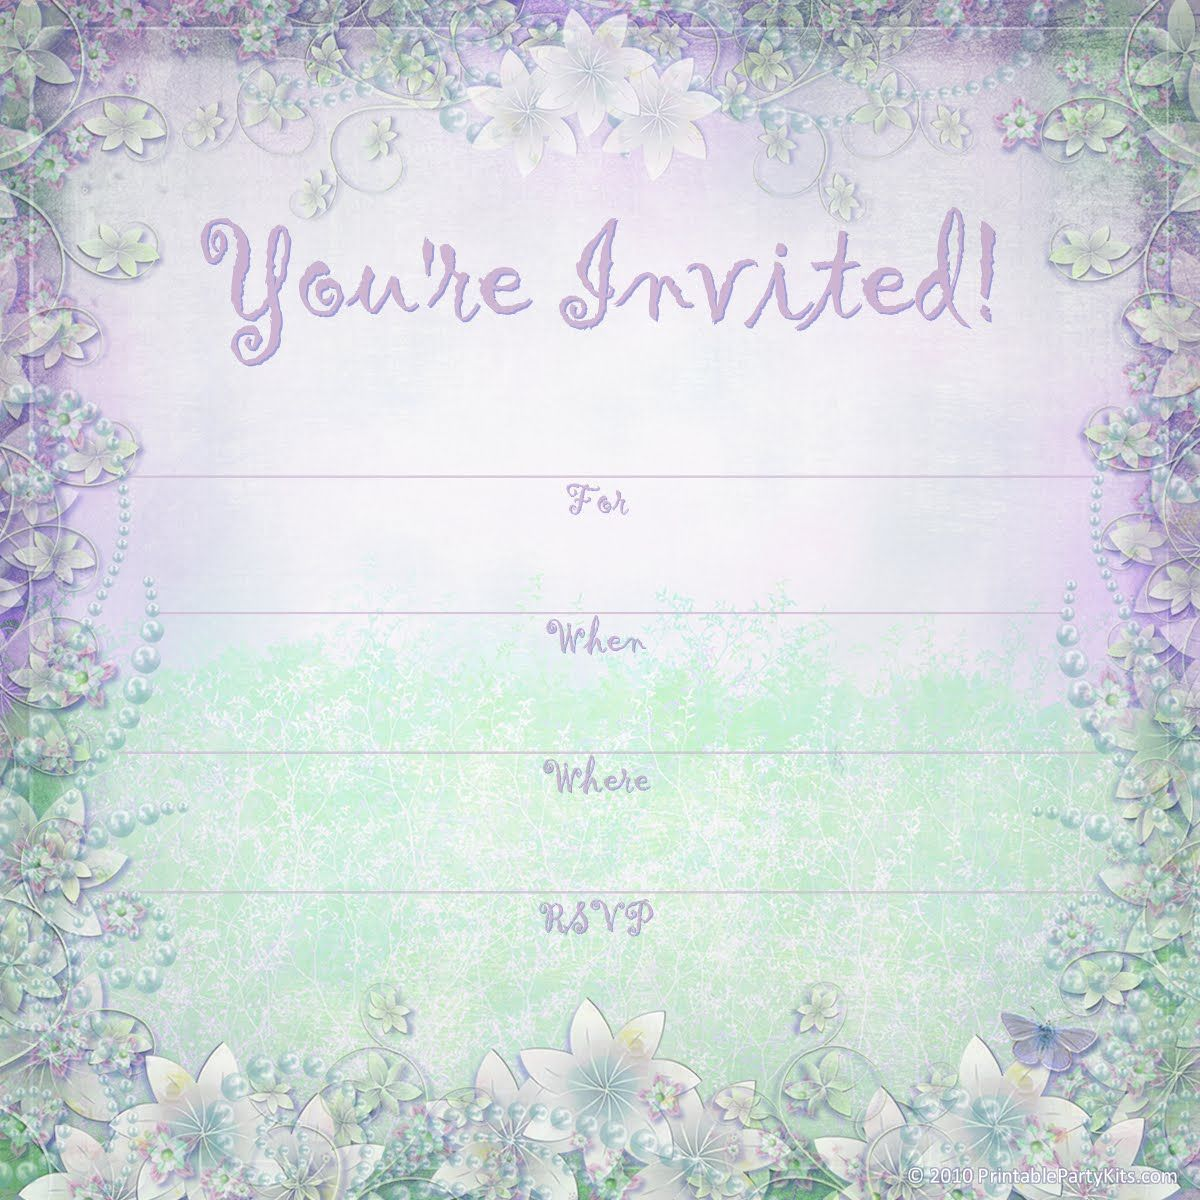 free summer party invite templates kndls birthday party